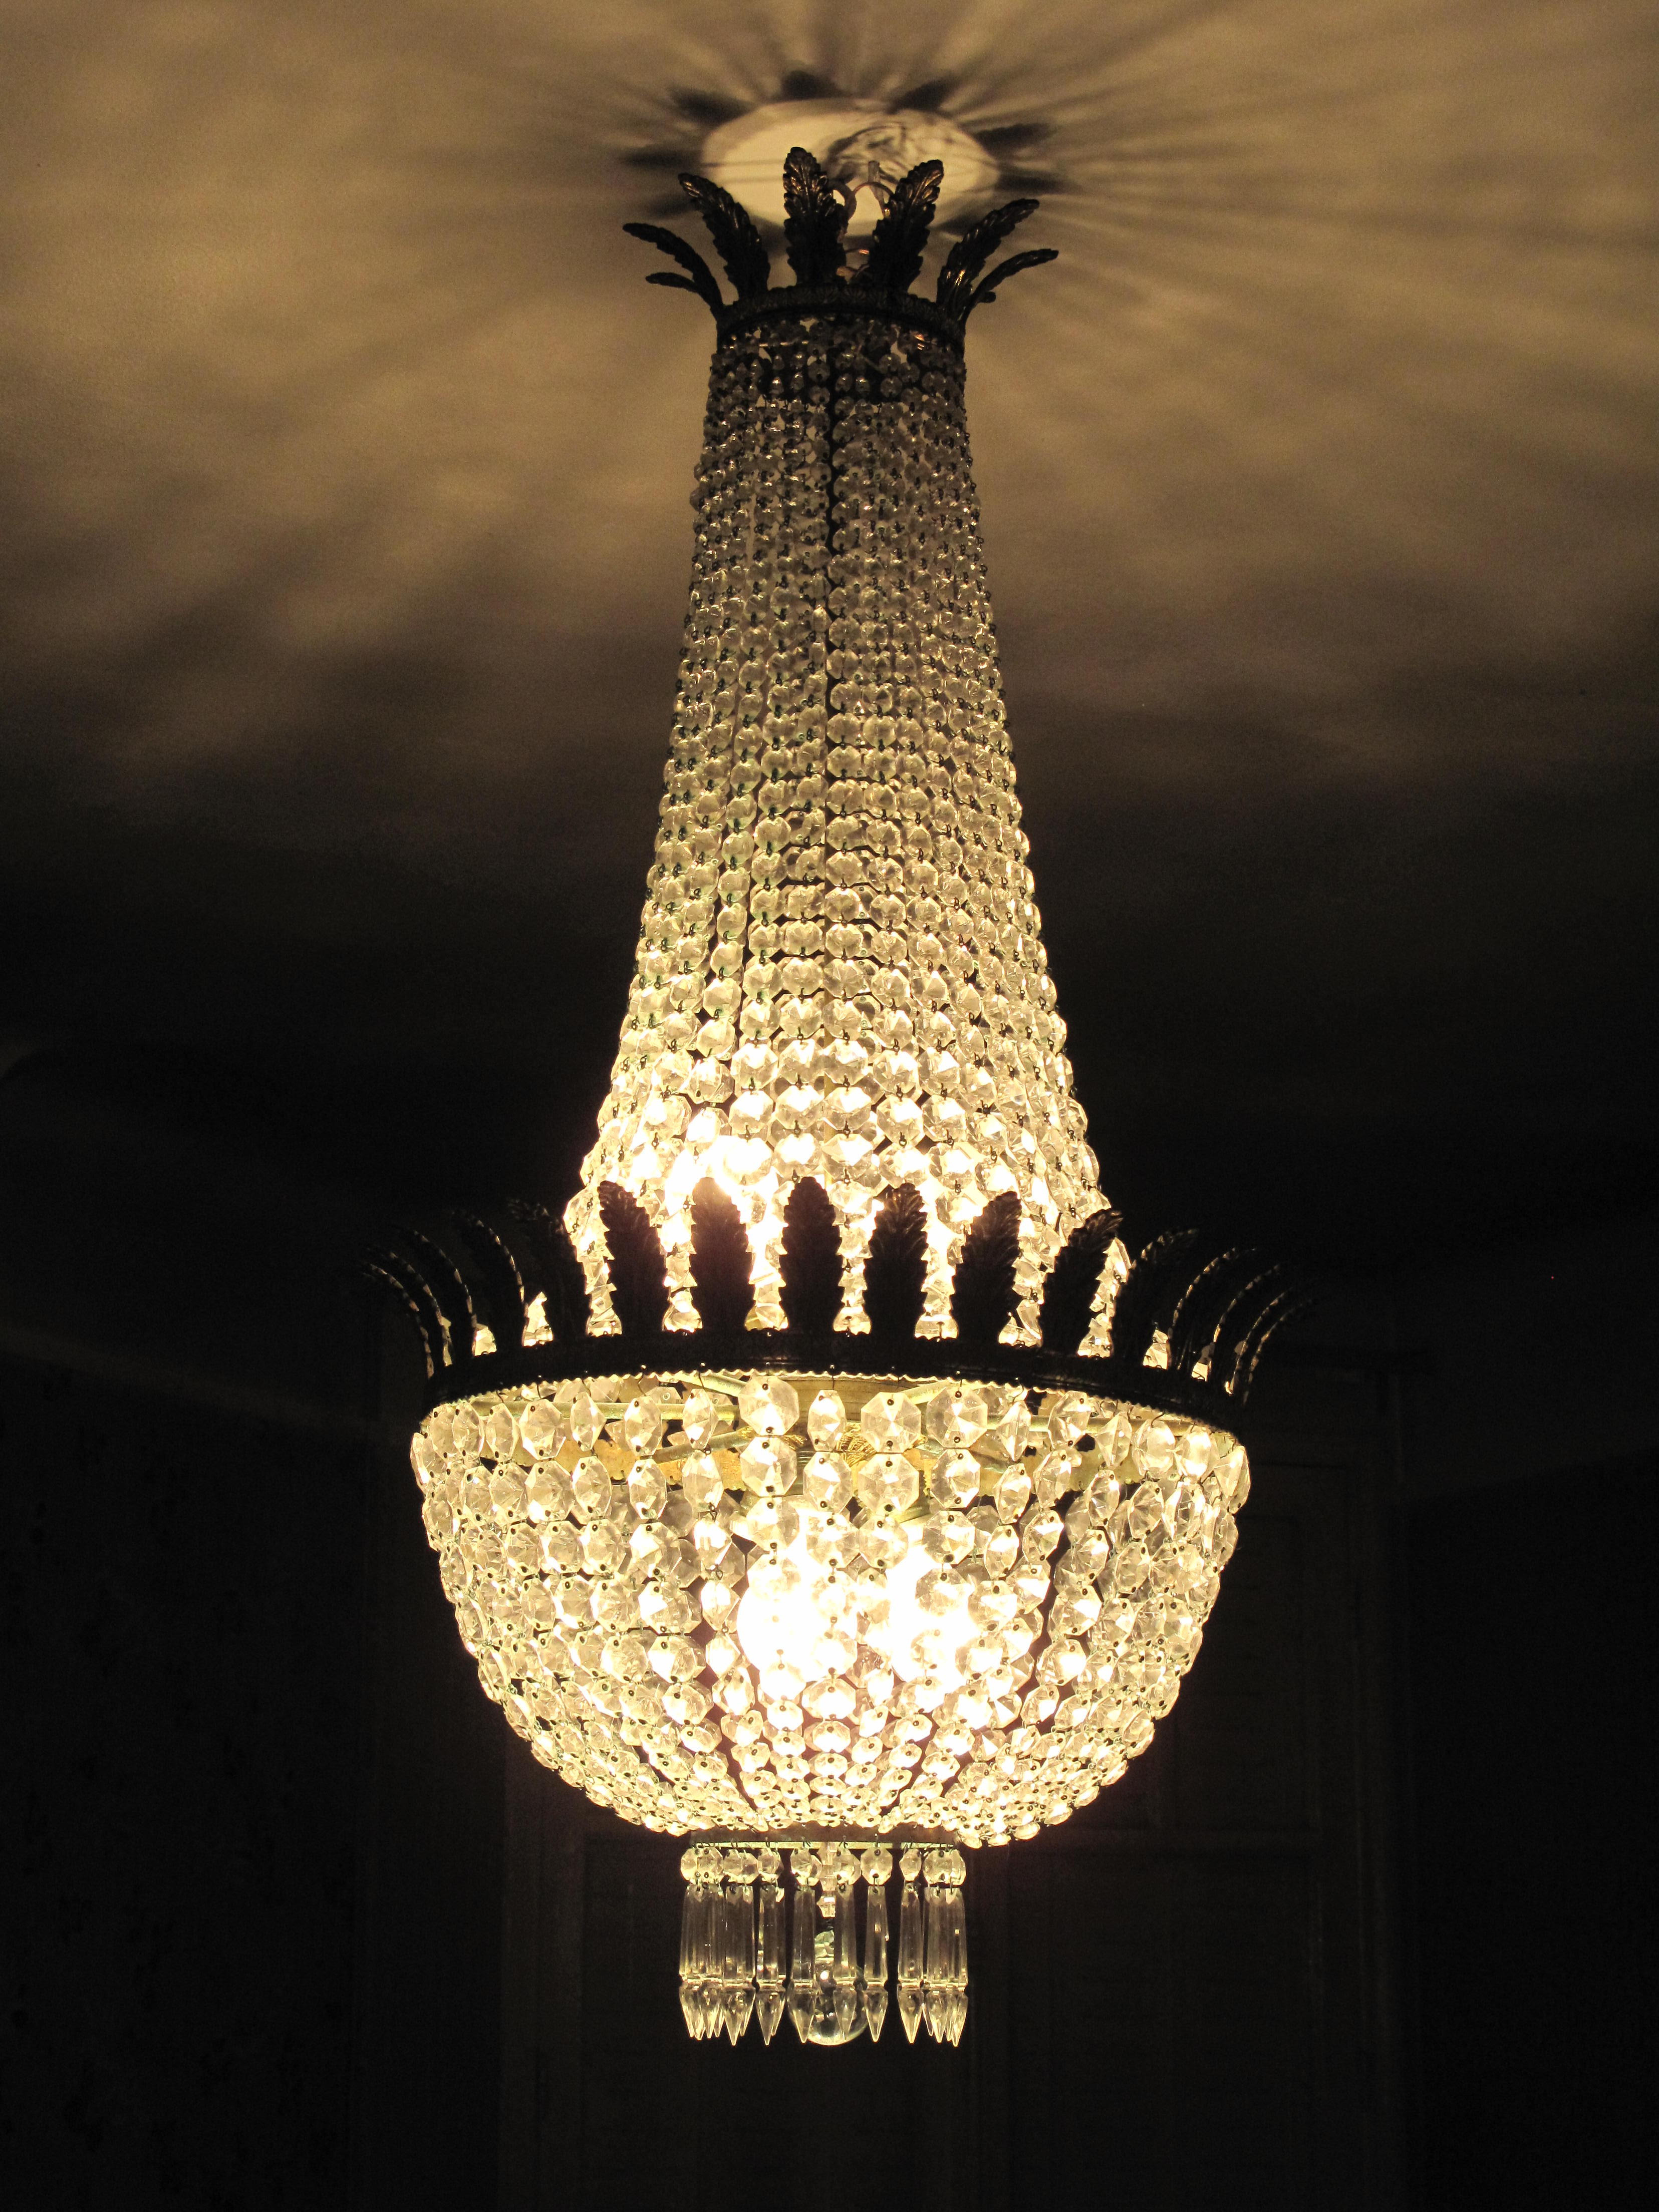 1000 images about lustres on pinterest chandeliers. Black Bedroom Furniture Sets. Home Design Ideas